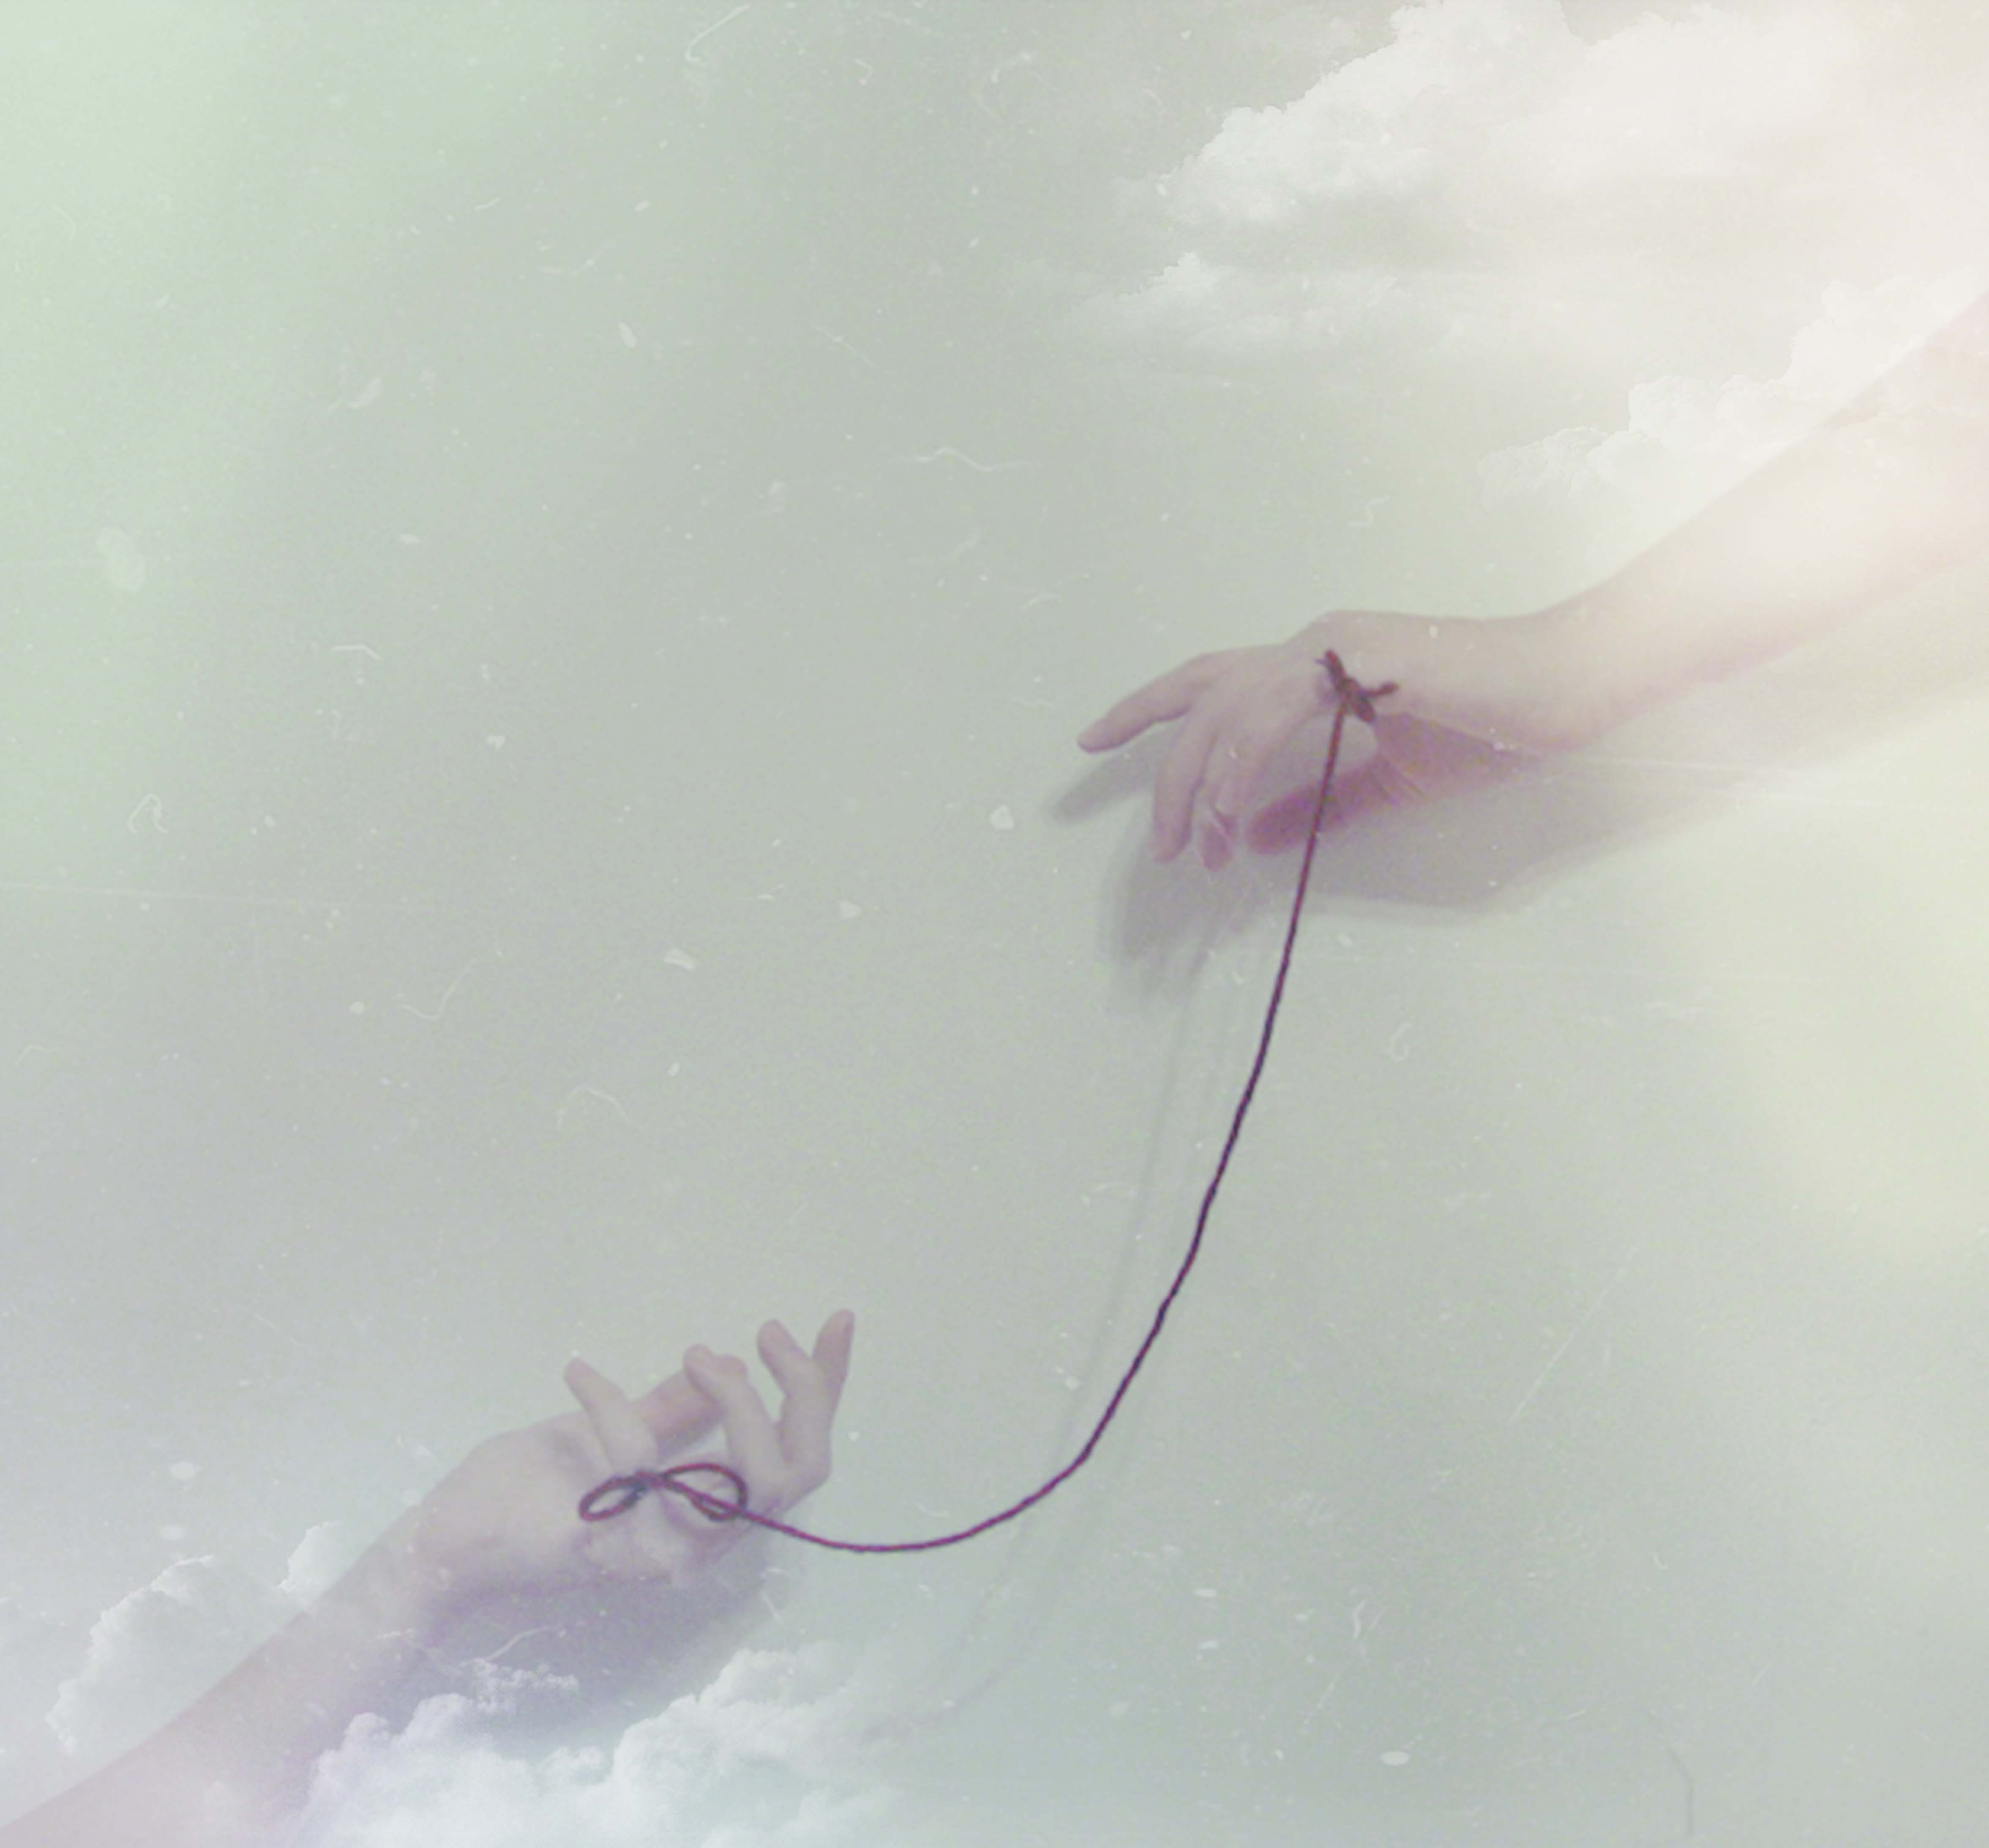 Red String Of Fate By Nile Can Too On Deviantart